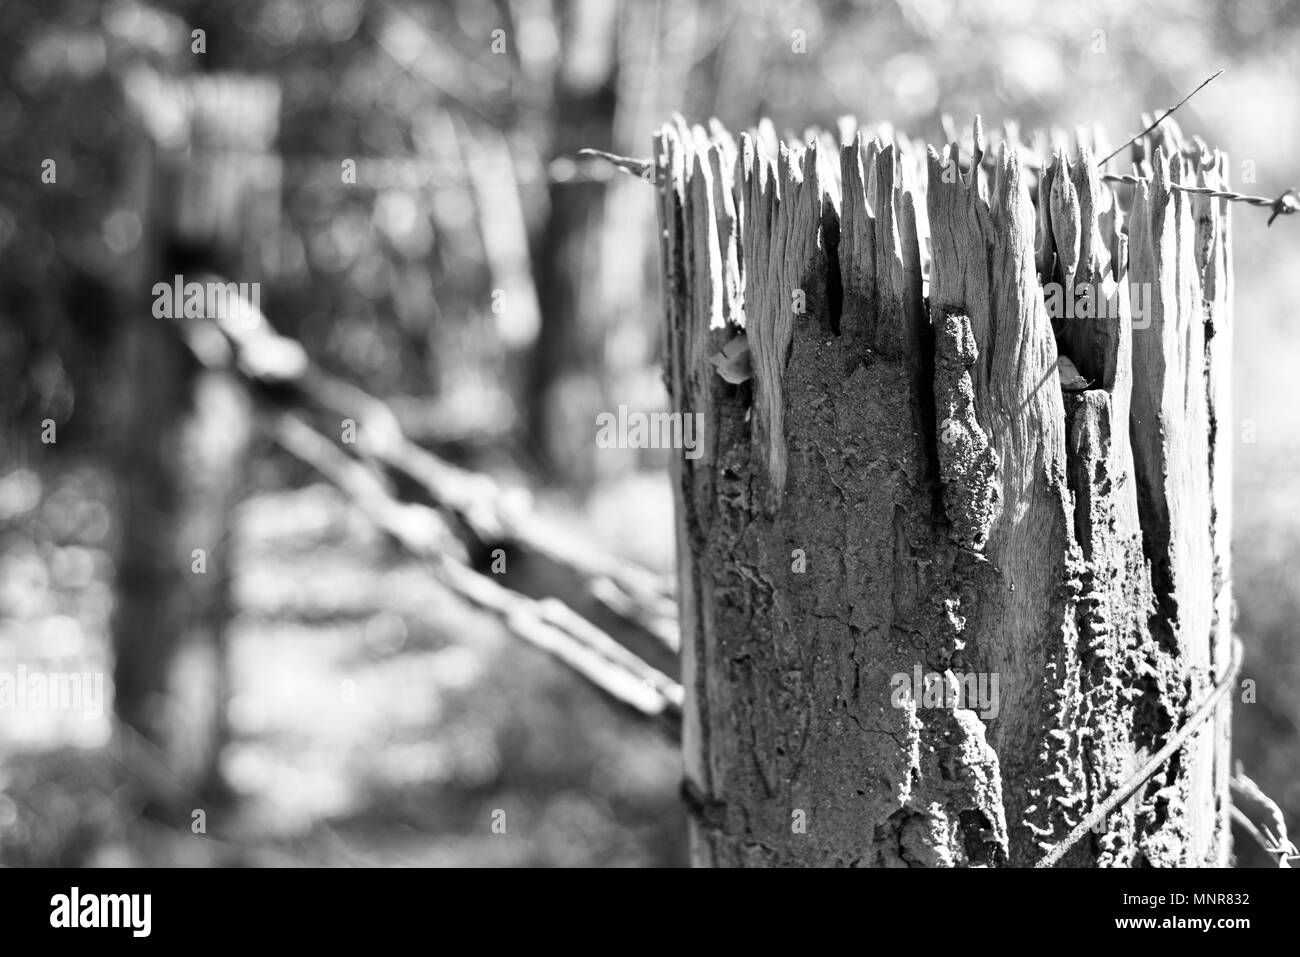 An old decayed and termite eaten fence post in black and white, Rollingstone QLD, Australia - Stock Image